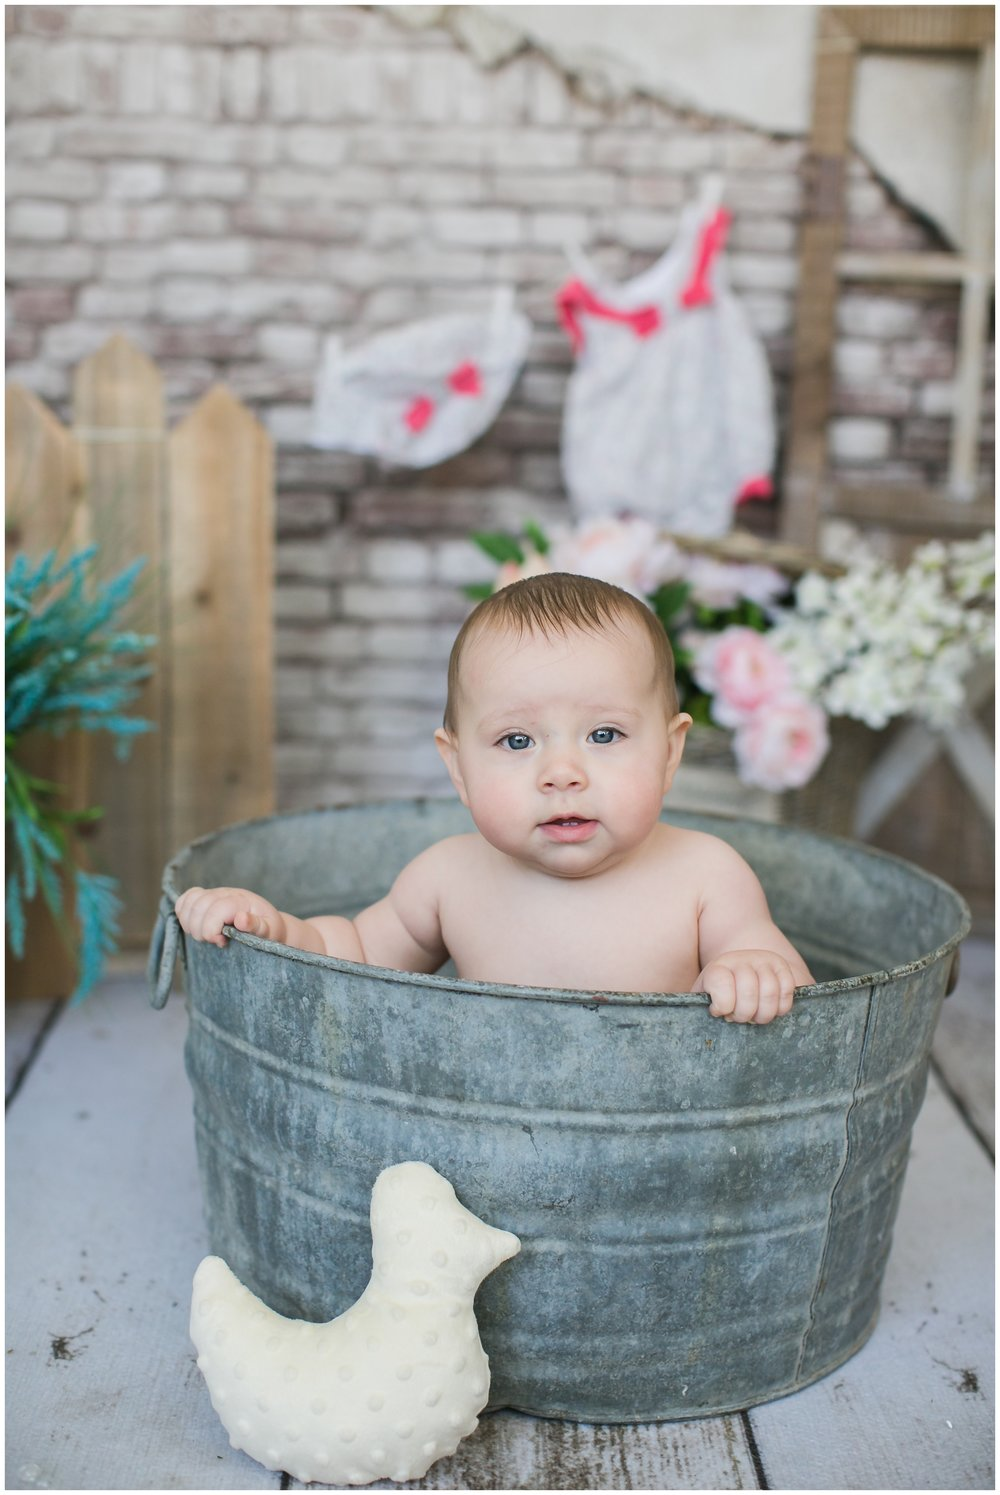 baby-collection-carrie-vines-redlands-portrait-photograhy-023.jpg